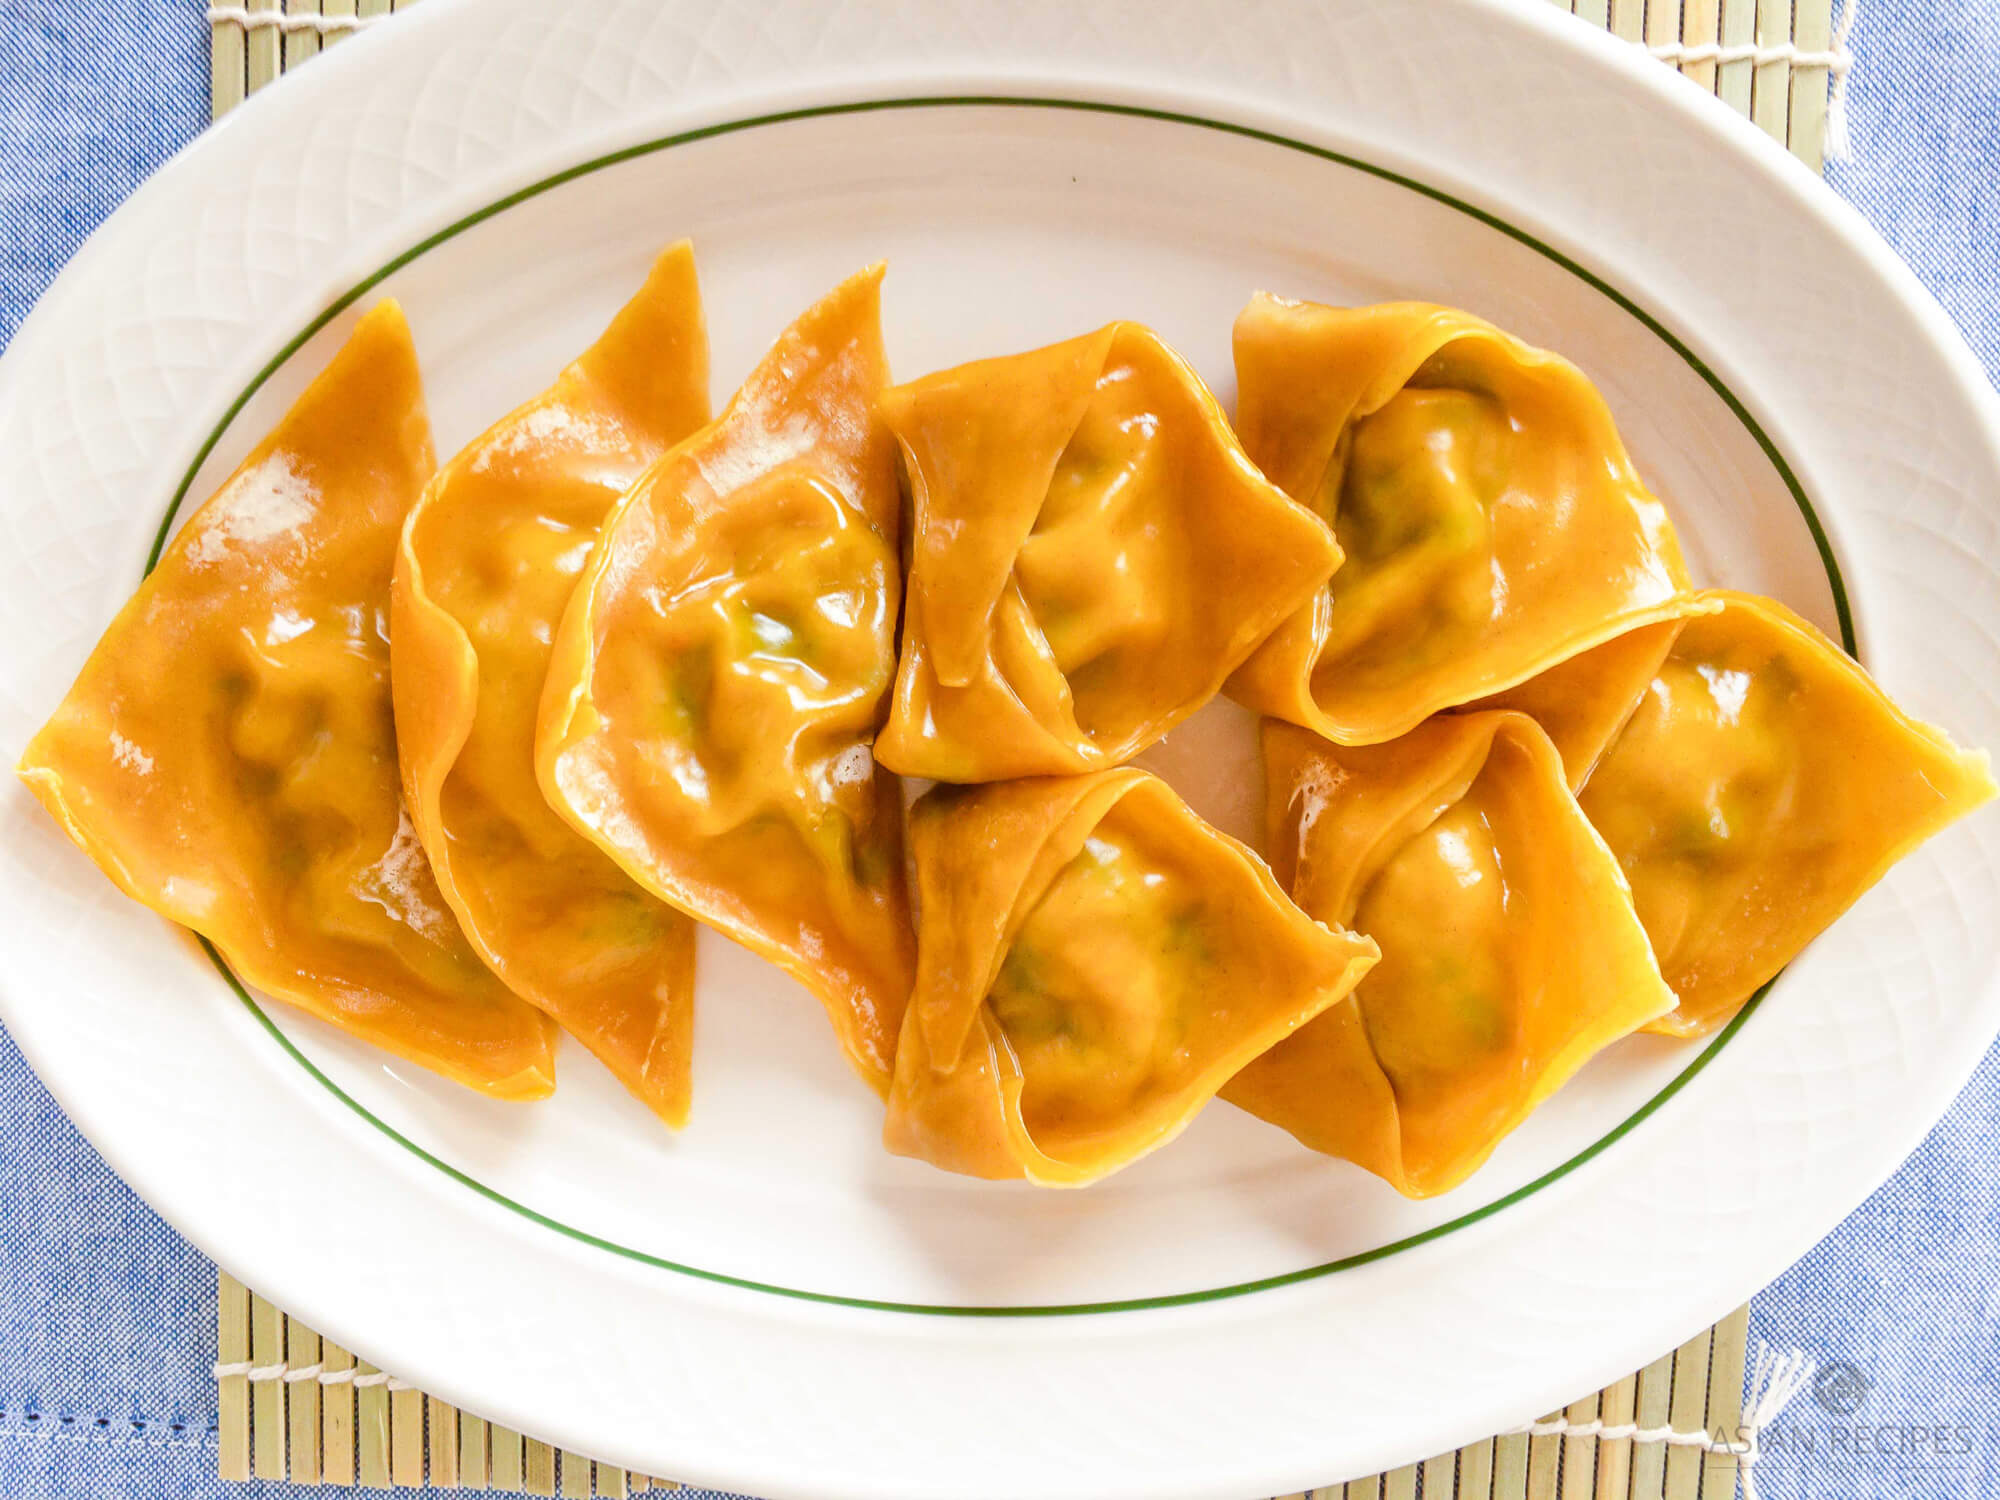 Make delicious steamed Korean dumplings (mandu) with our unique recipe using pork belly and kimchi. This recipe uses a mixture of pork belly, kimchi, scallions, napa cabbage and seasonings.